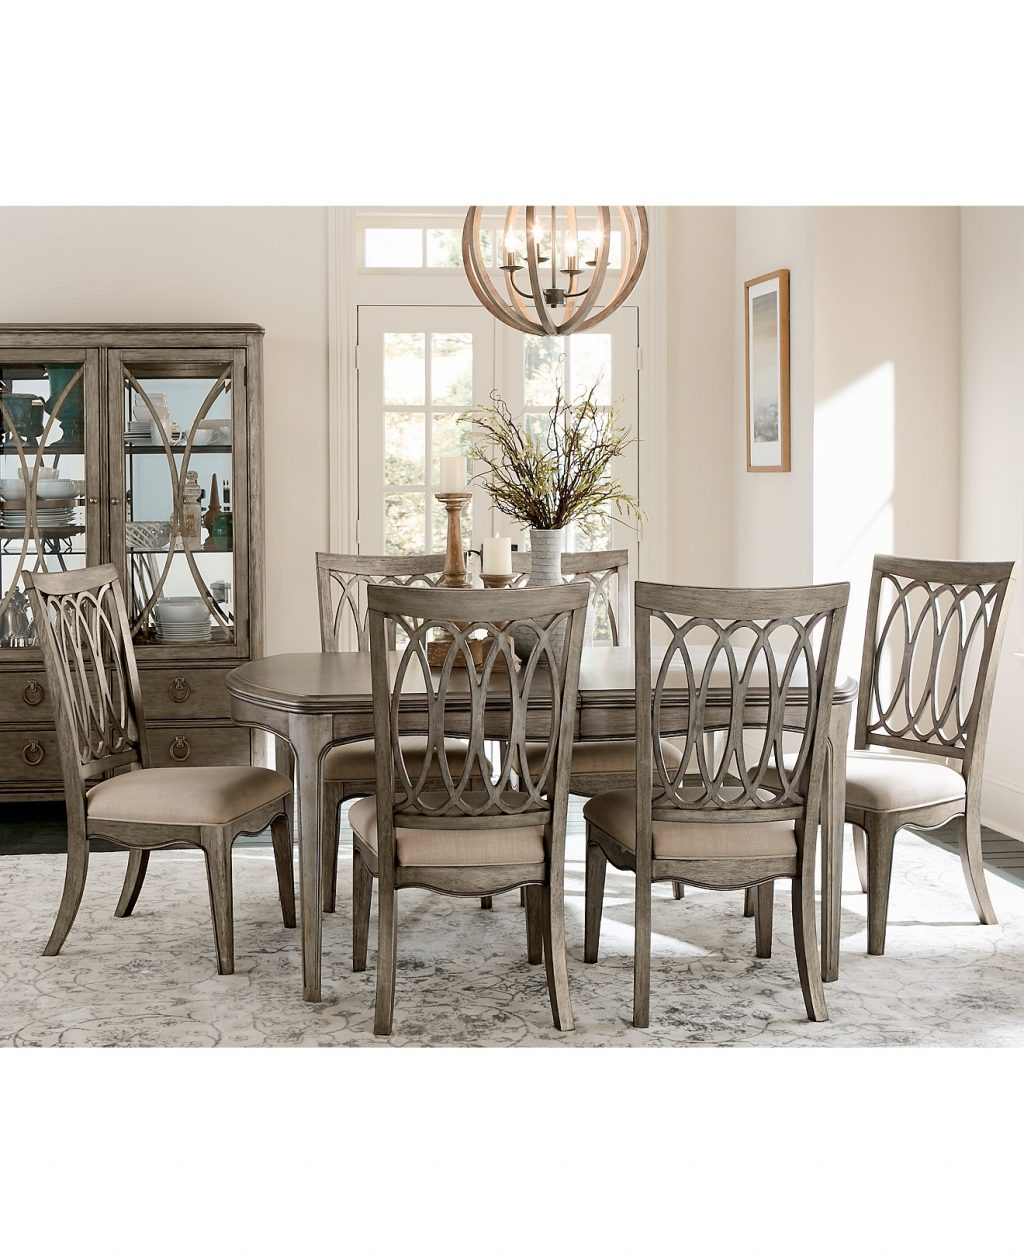 Dining Room Macys Dining Table Macys Furnuture Macy Dining Room